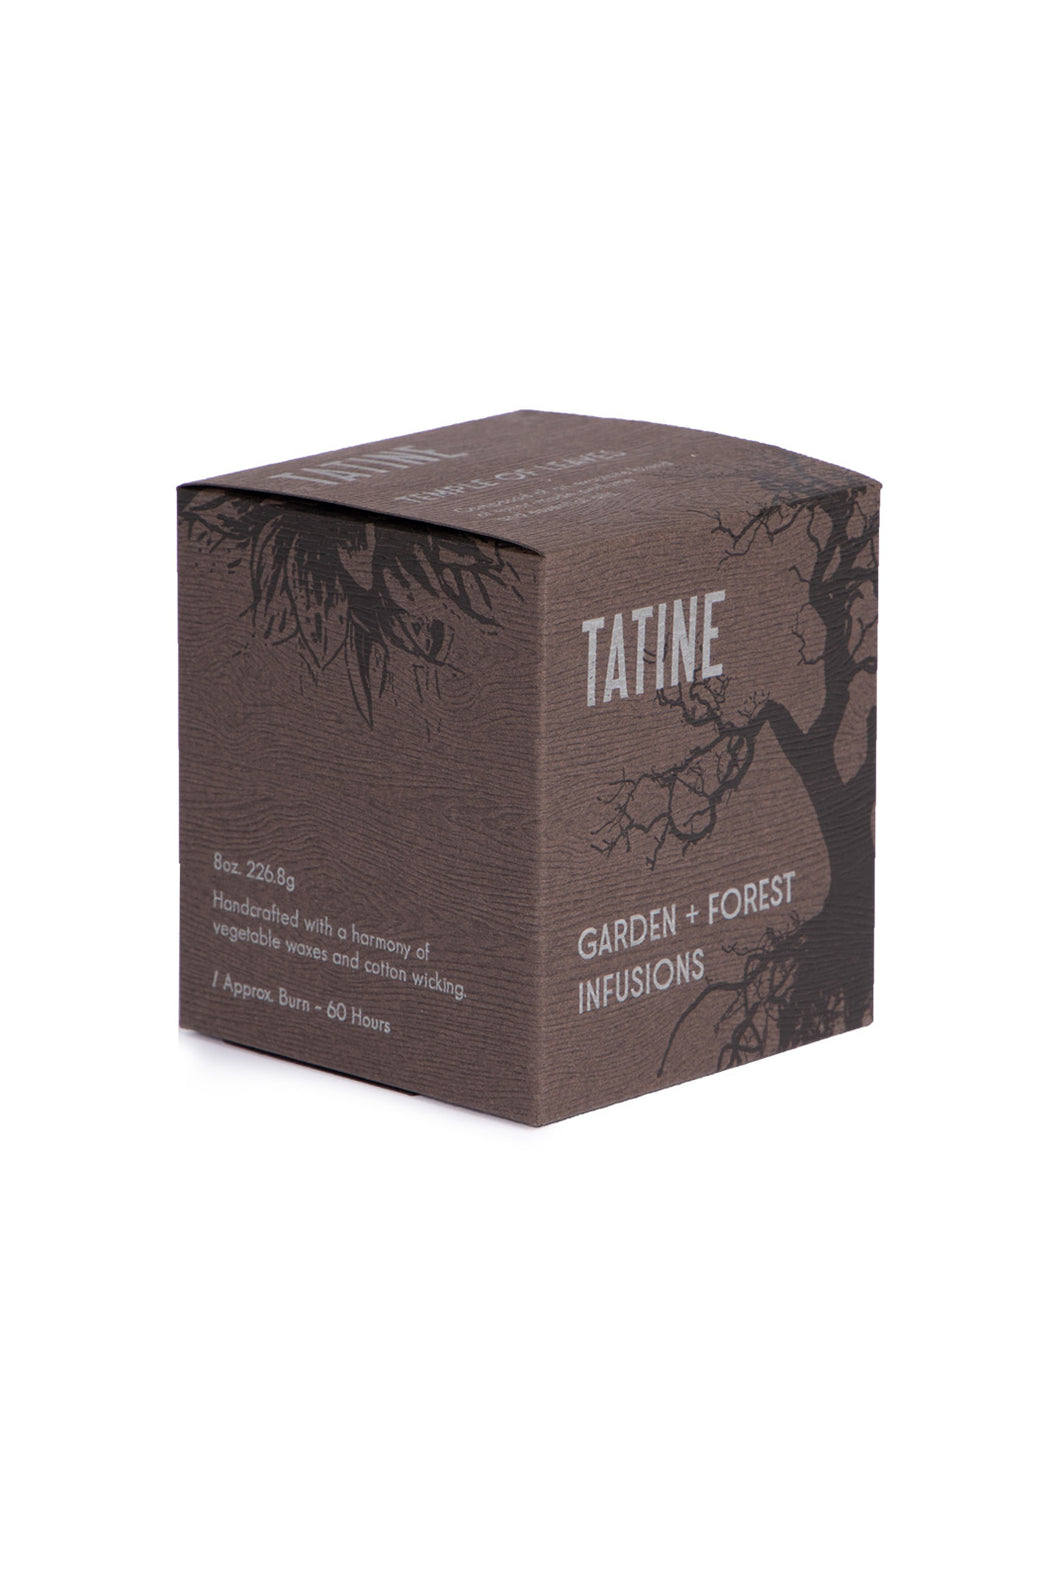 Tatine - Scented Candle - Garden and Forest Infusions Collection - Temple of Leaves